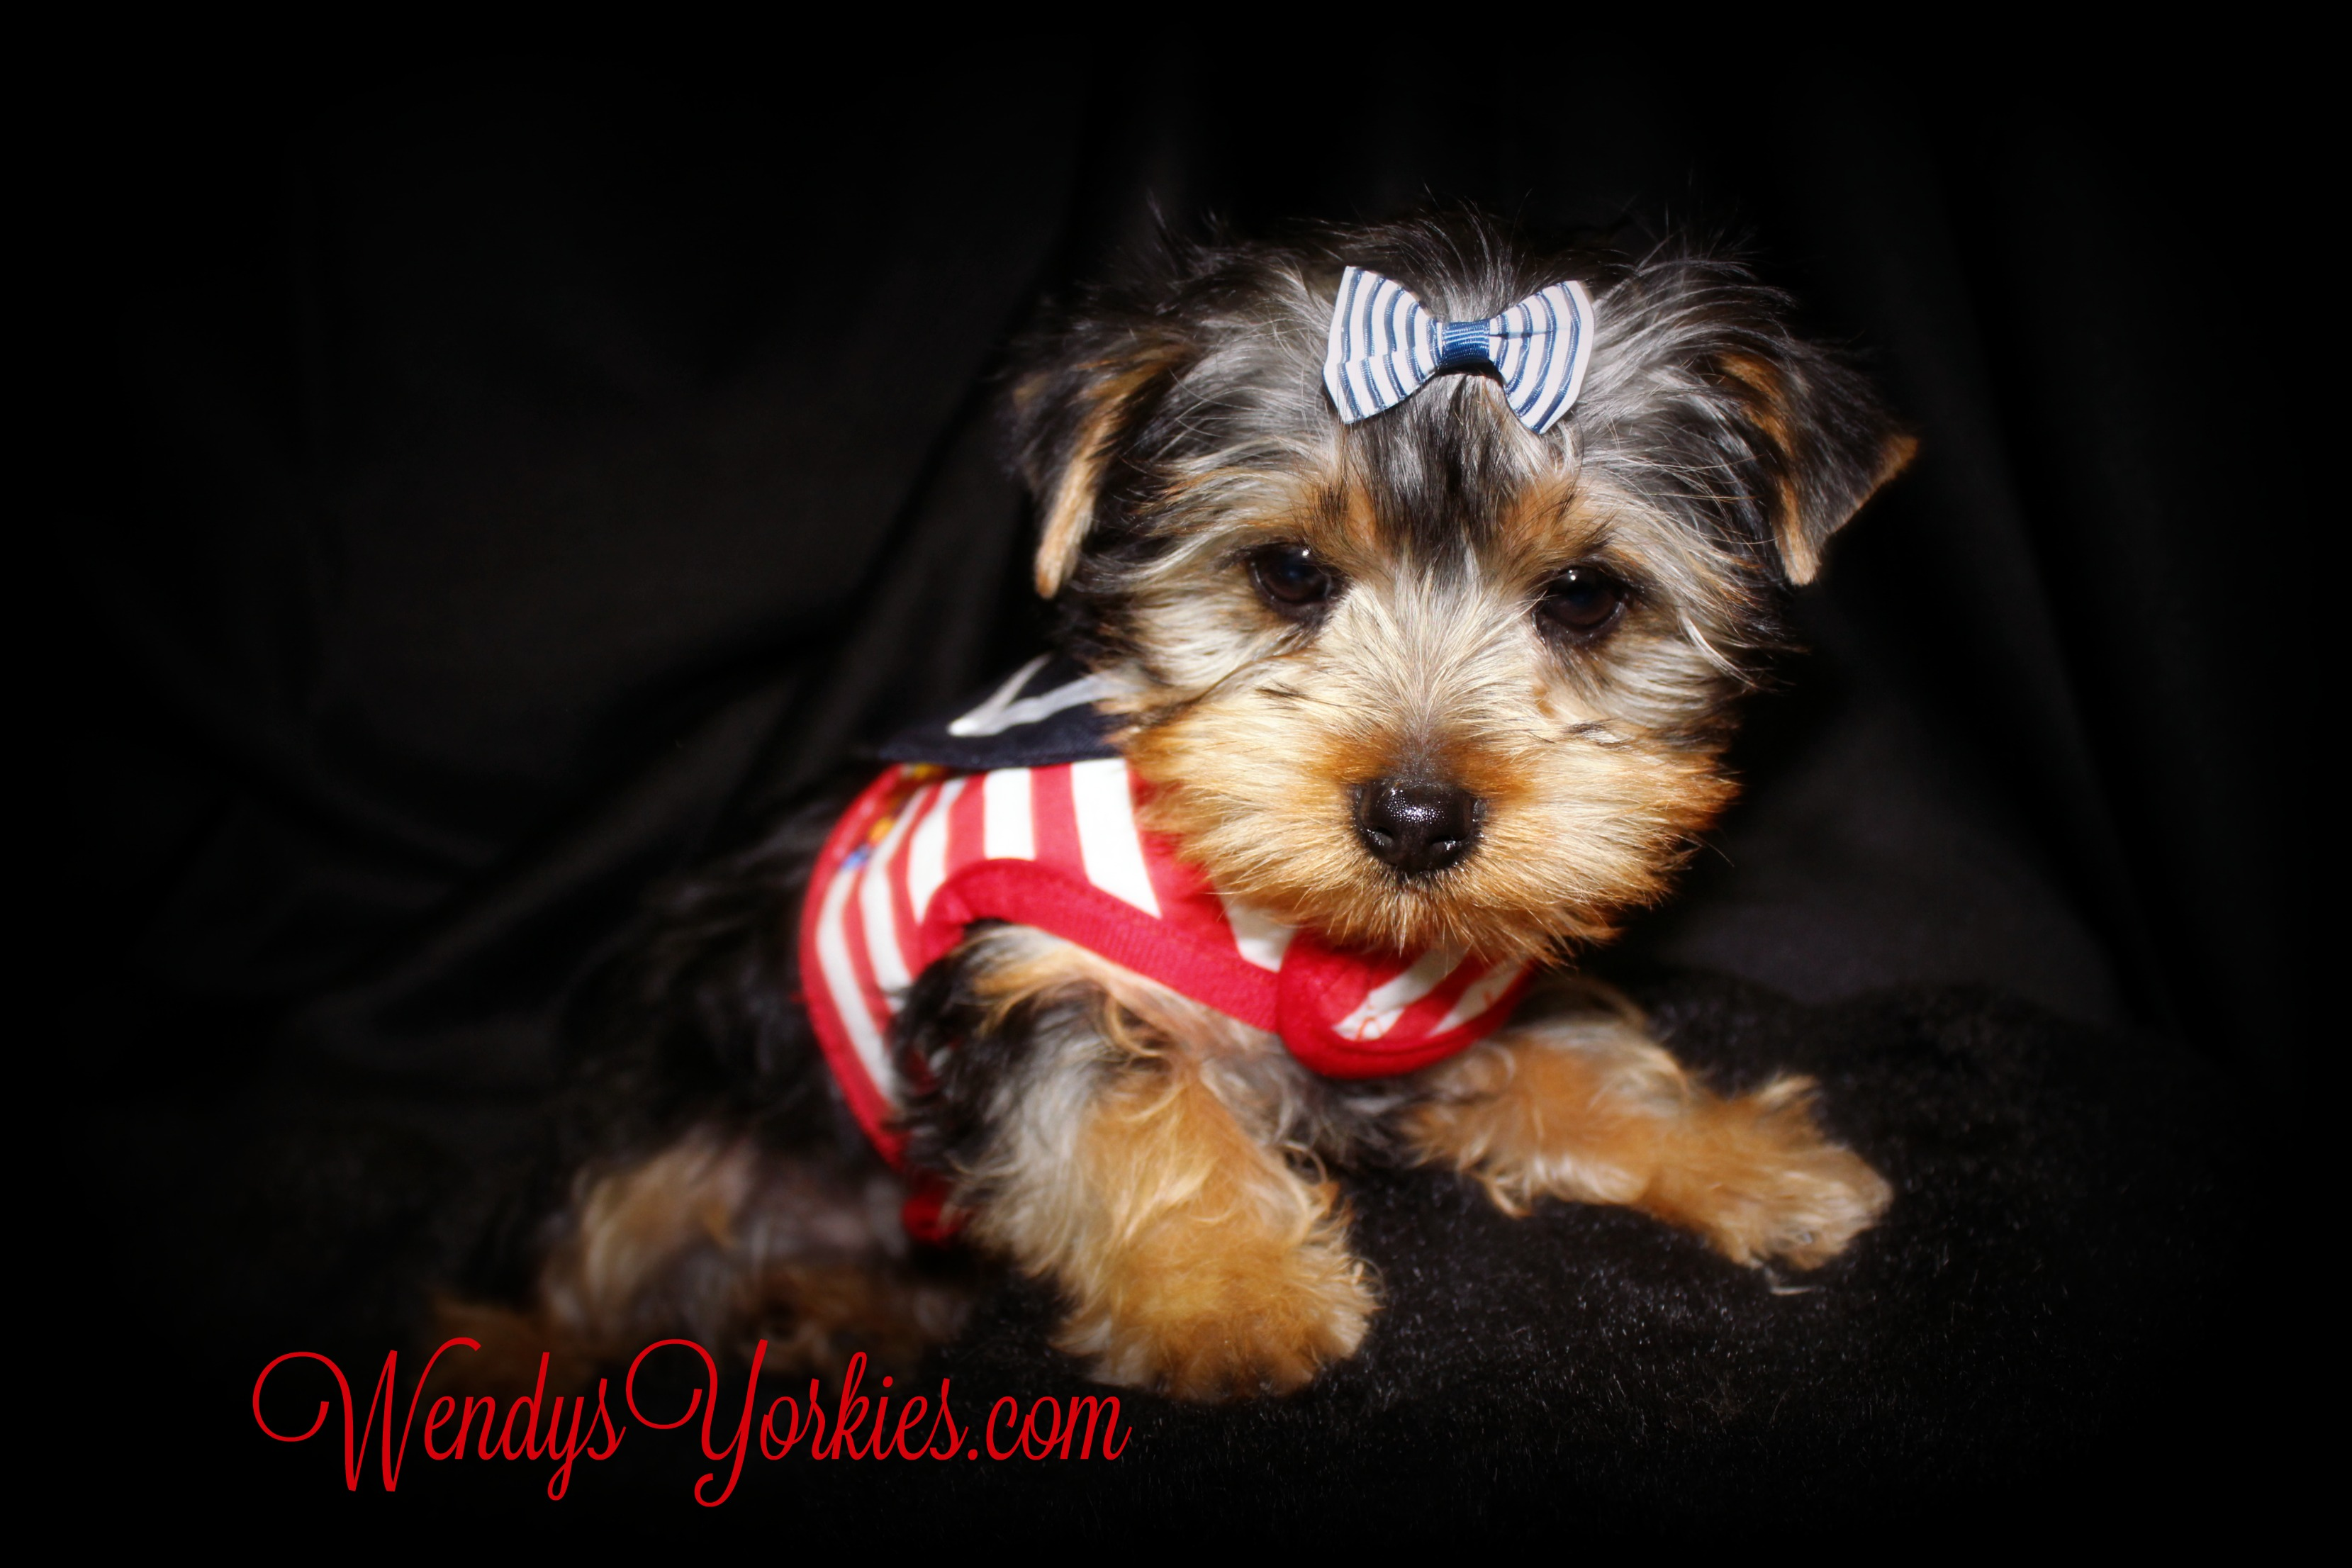 Yorkie puppies for sale, WendysYOrkies.com, Ladys Lacy Jax